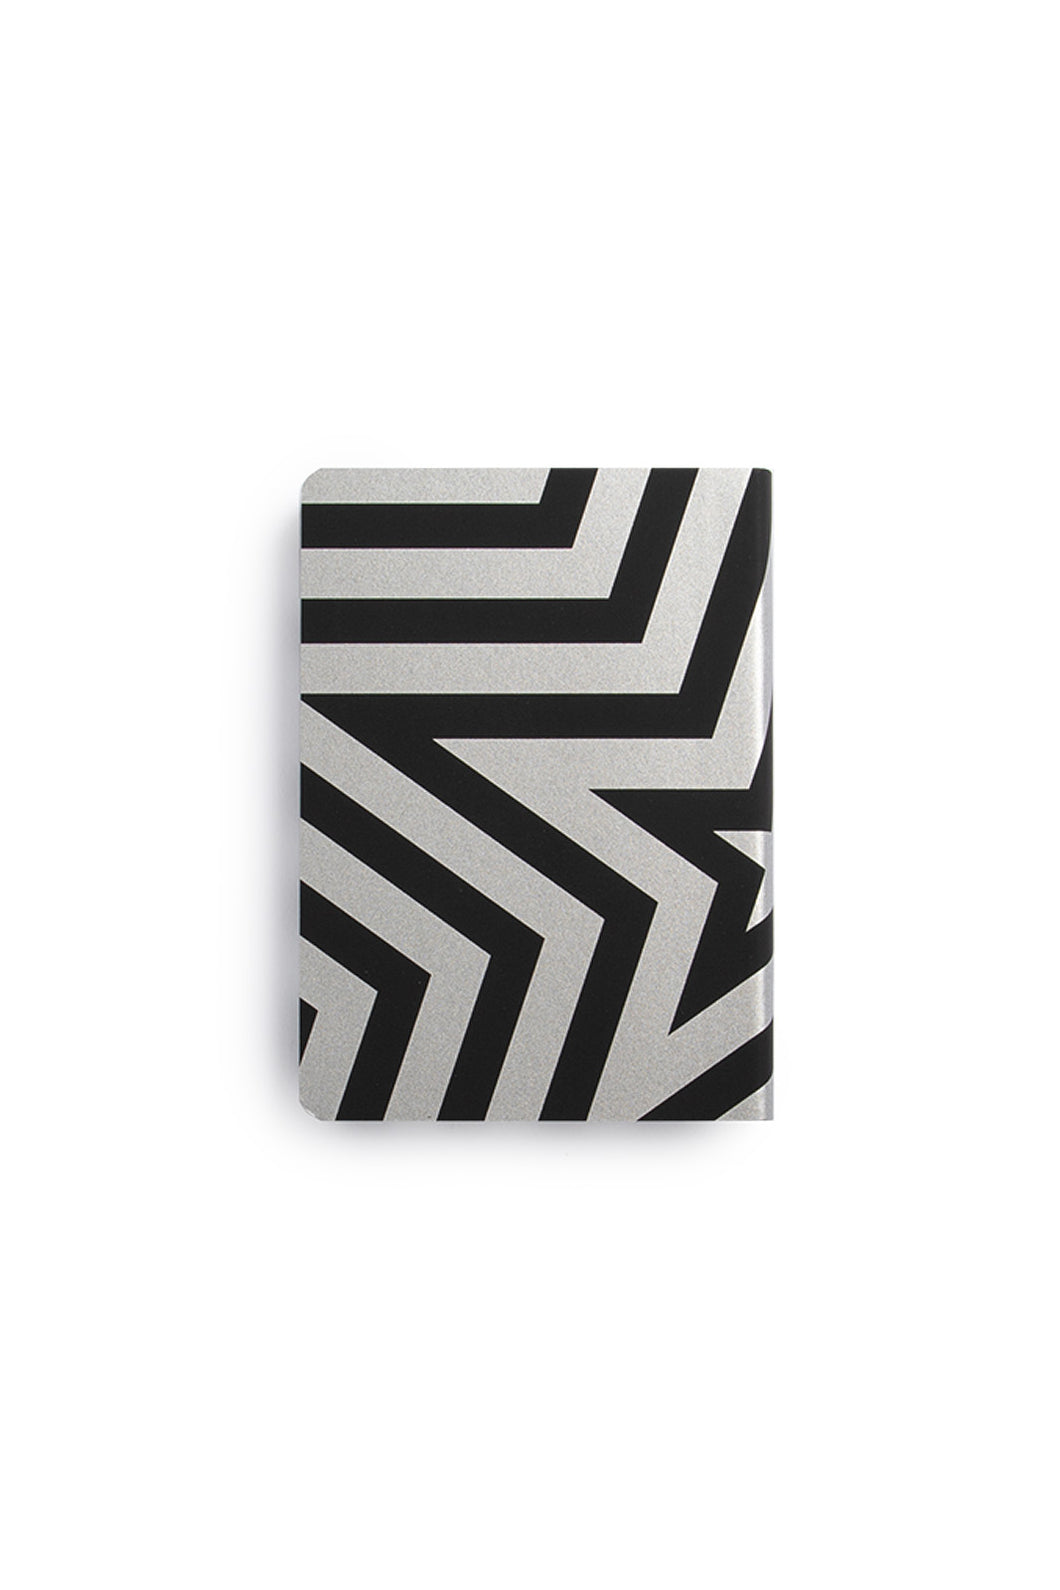 nuuna - Graphic Notebook - Dot Grid - Small - Super Star